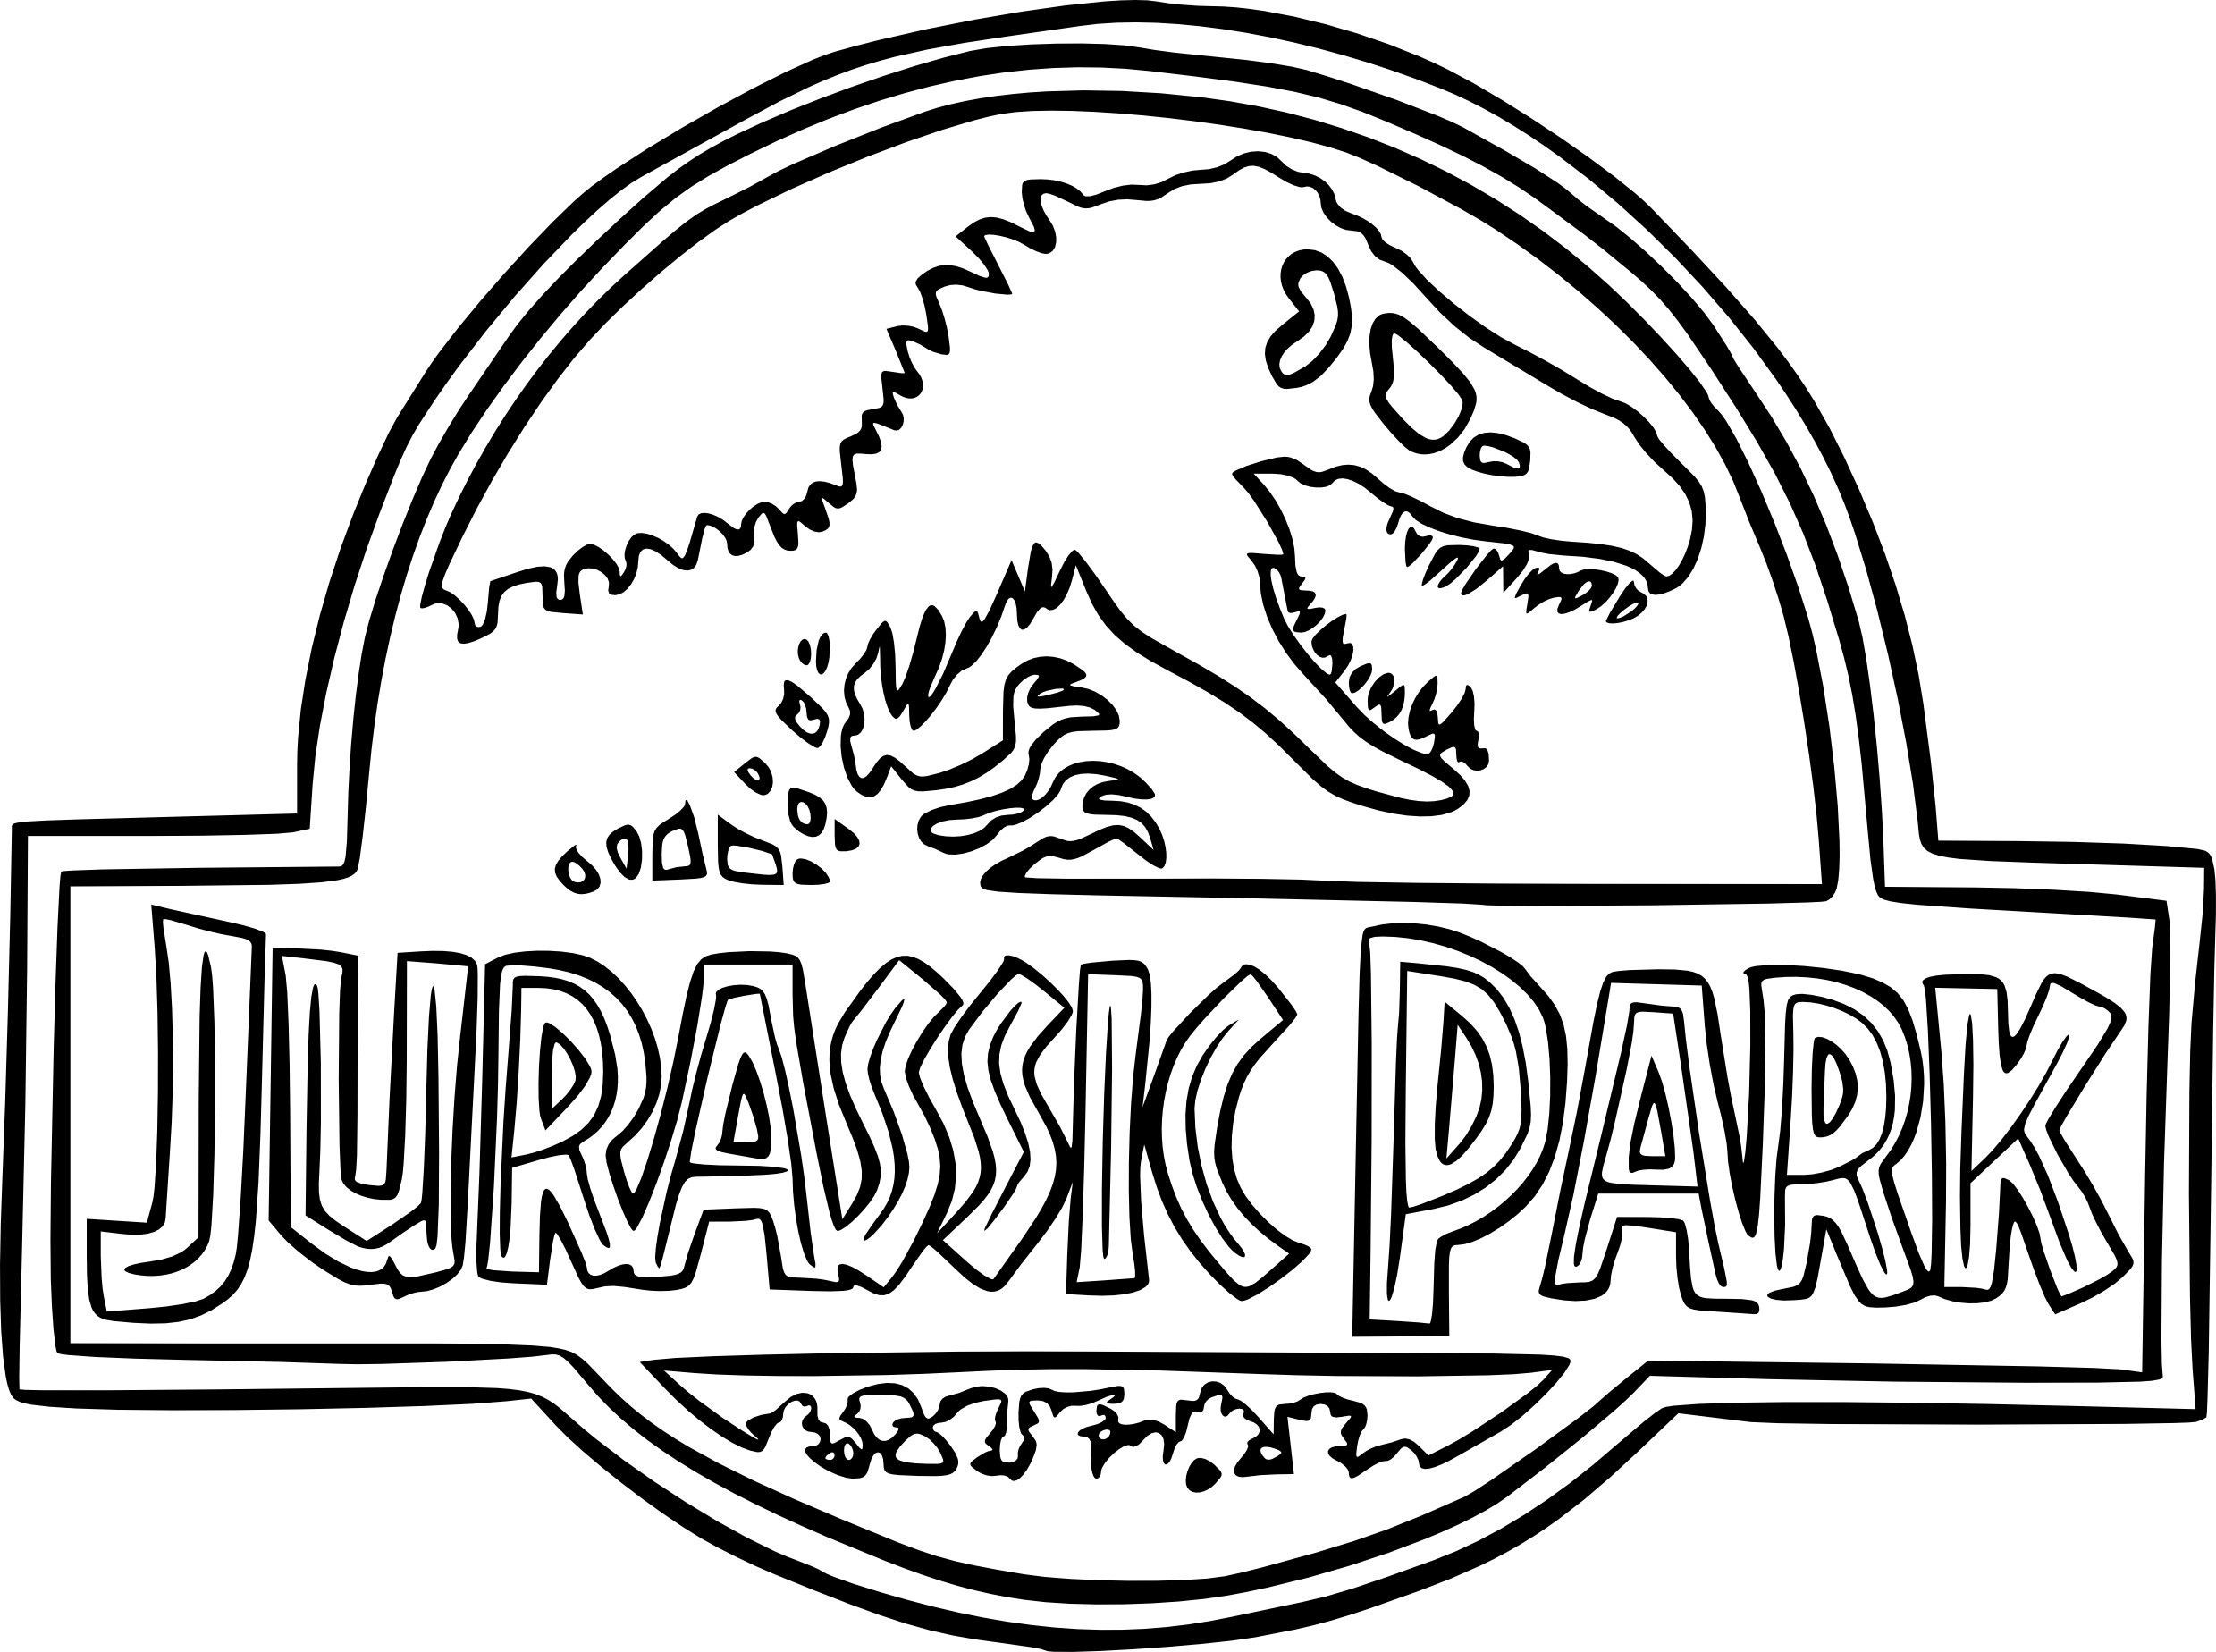 2479x1848 Jurassic Park Coloring Pages Luxury Tyrannosaurus Coloring Pages